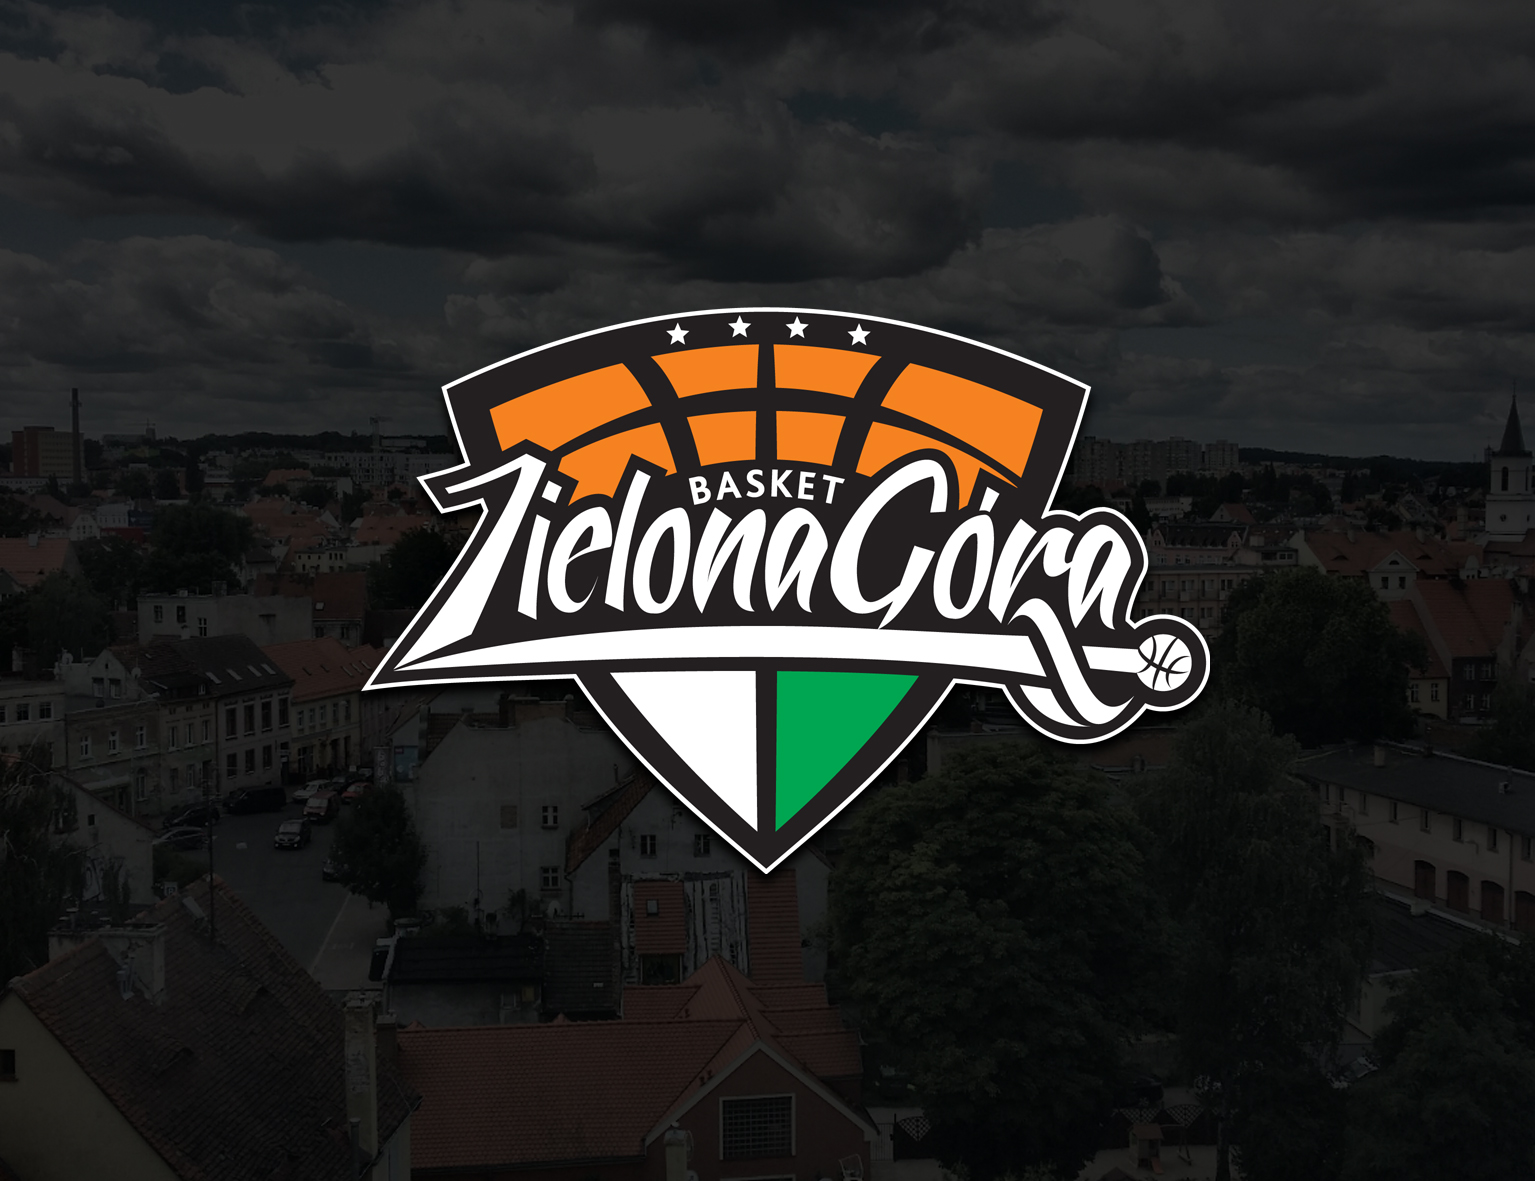 Zielona Gora Joins VTB United League In 2018-19